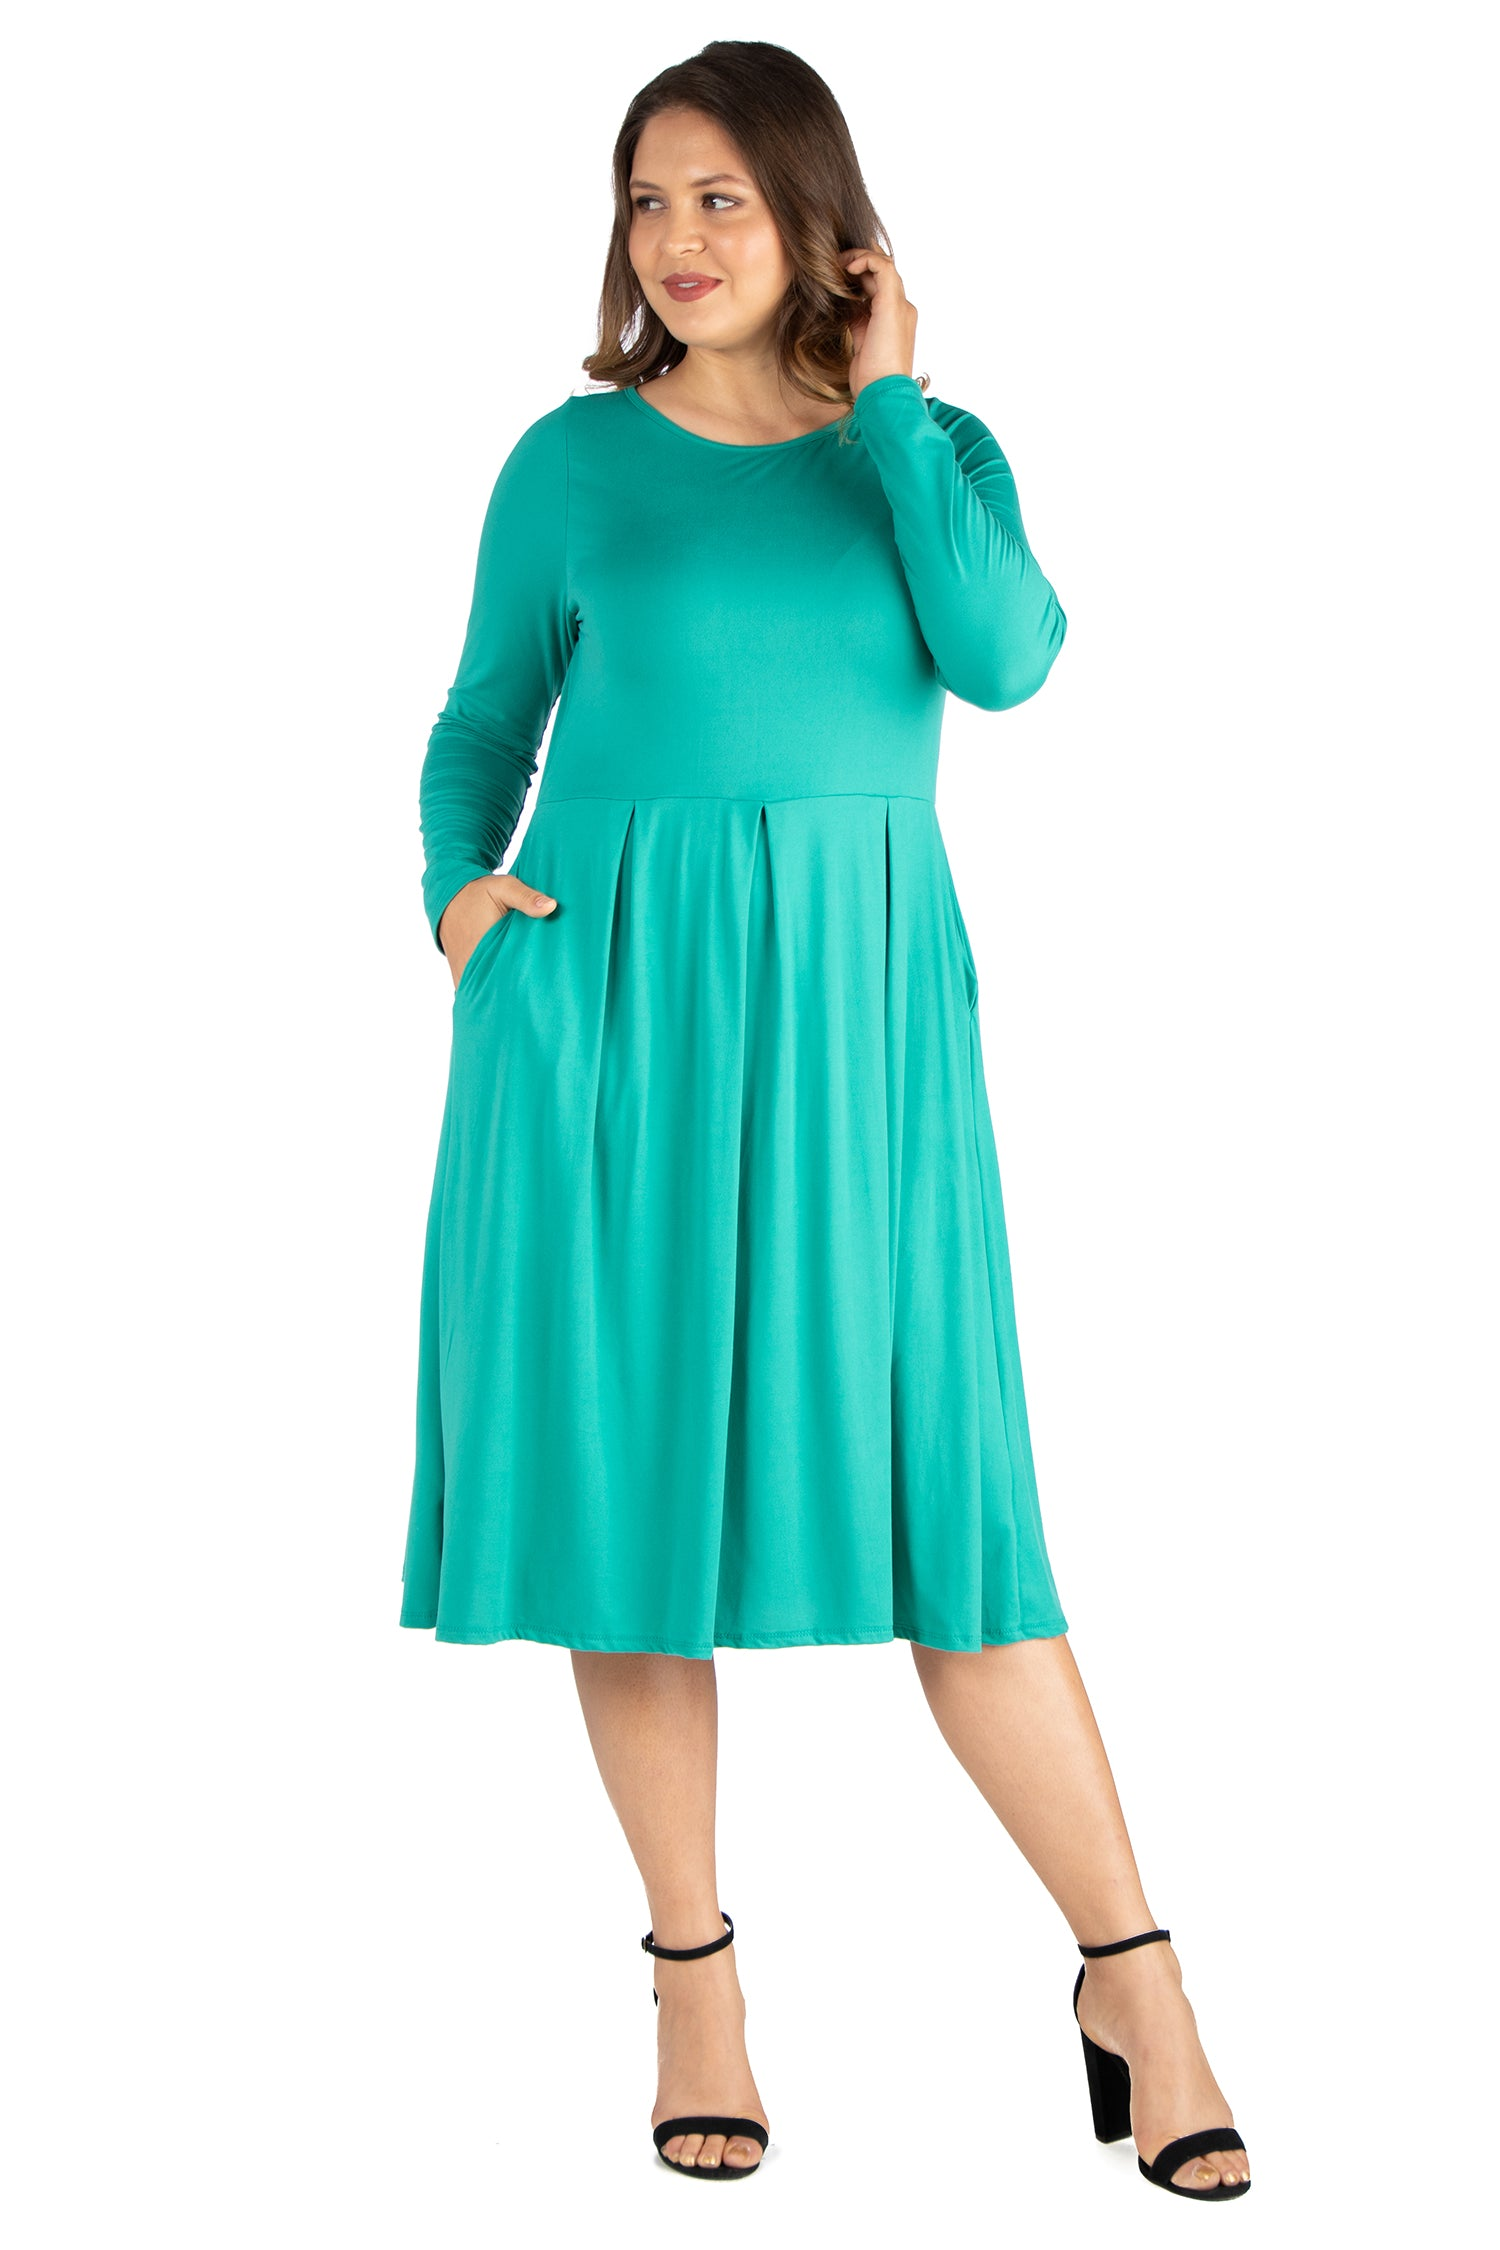 24seven Comfort Apparel Long Sleeve Fit and Flare Plus Size Midi Dress-DRESSES-24Seven Comfort Apparel-JADE-1X-24/7 Comfort Apparel